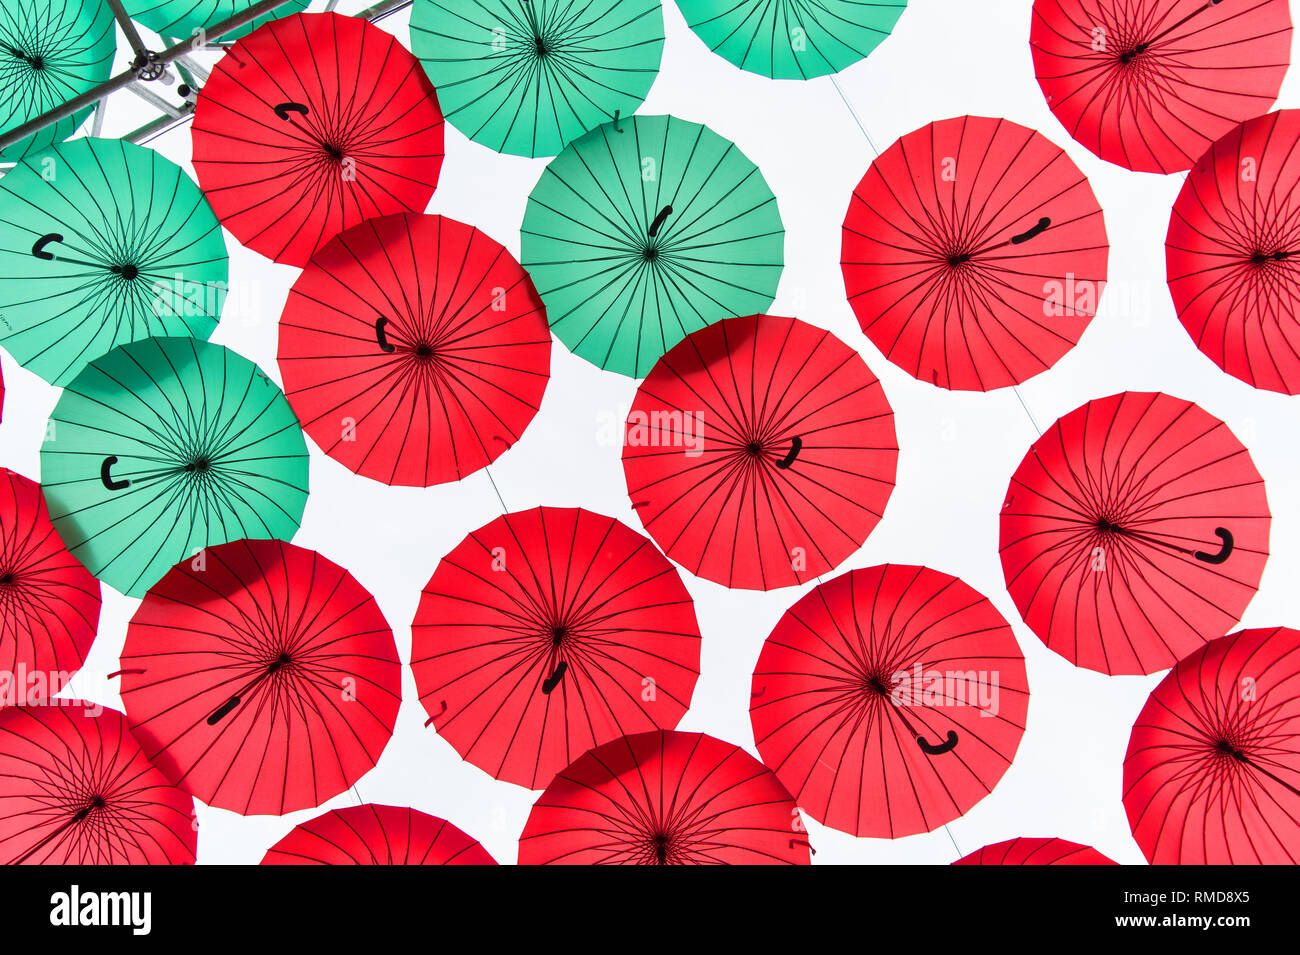 Beautiful colorful umbrellas or parasols with red and green canopies and crook handles hang outdoors on white sky background - Stock Image